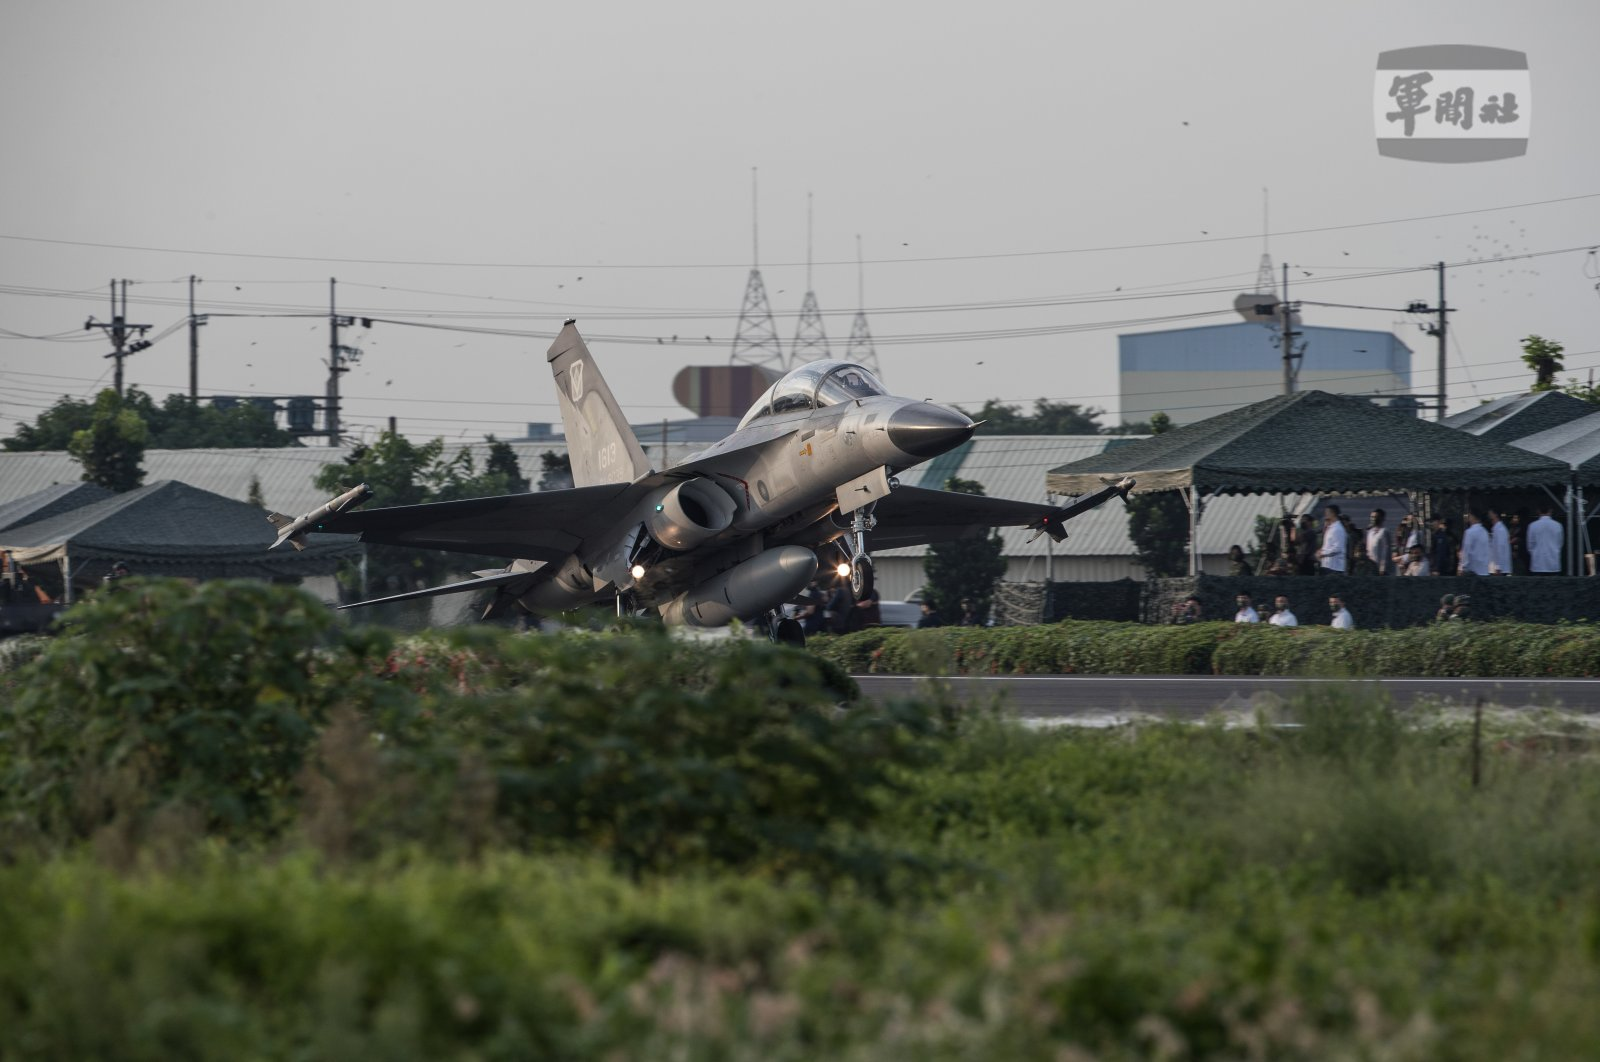 A handout photo made available by the Taiwan Ministry of National Defense shows a Taiwanese Air Force IDF fighter jet take-off on a highway converted as a runway during the Emergency Take-off and Landing drill in Pingtung, Taiwan, Sept. 15, 2021. (EPA Photo)